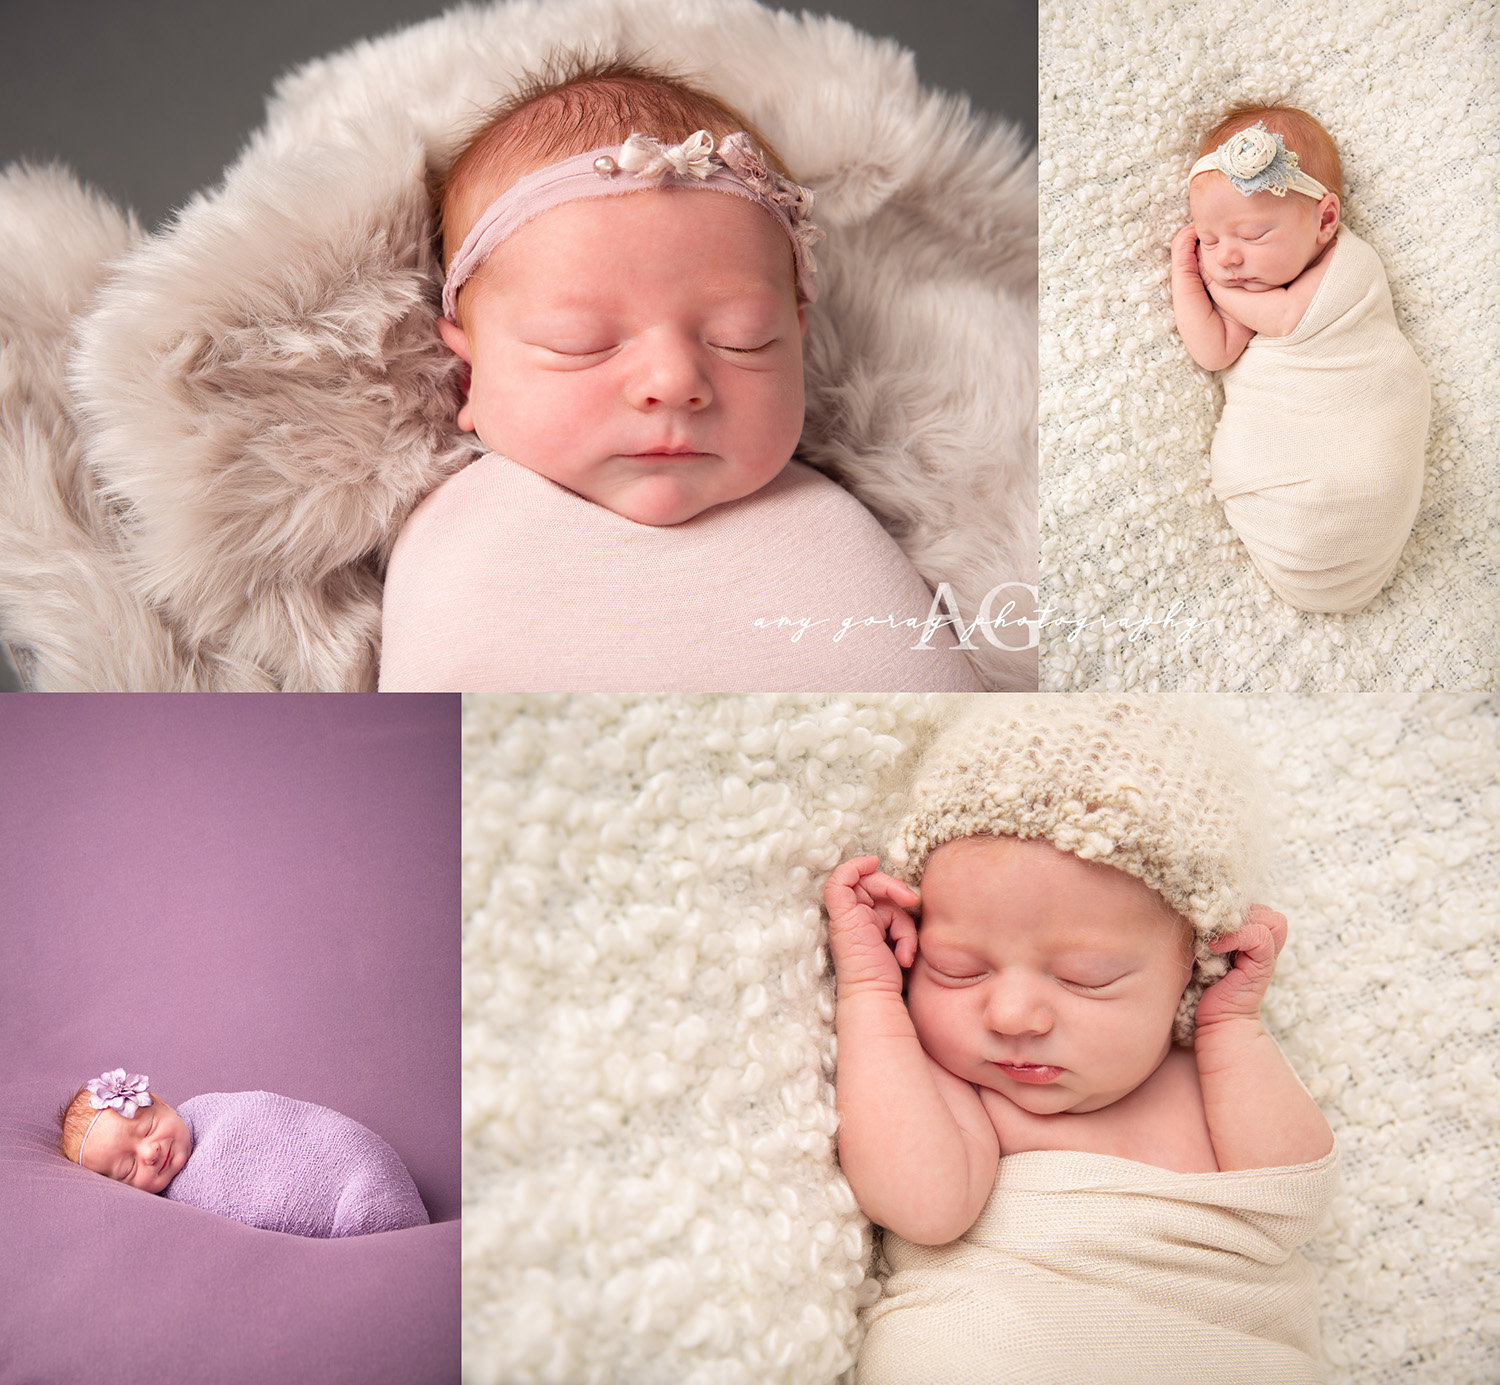 A Beautiful Mom To Be And Her Adorable Baby Girl Downers Grove Naperville Newborn Maternity Photographer Amy Goray Photography